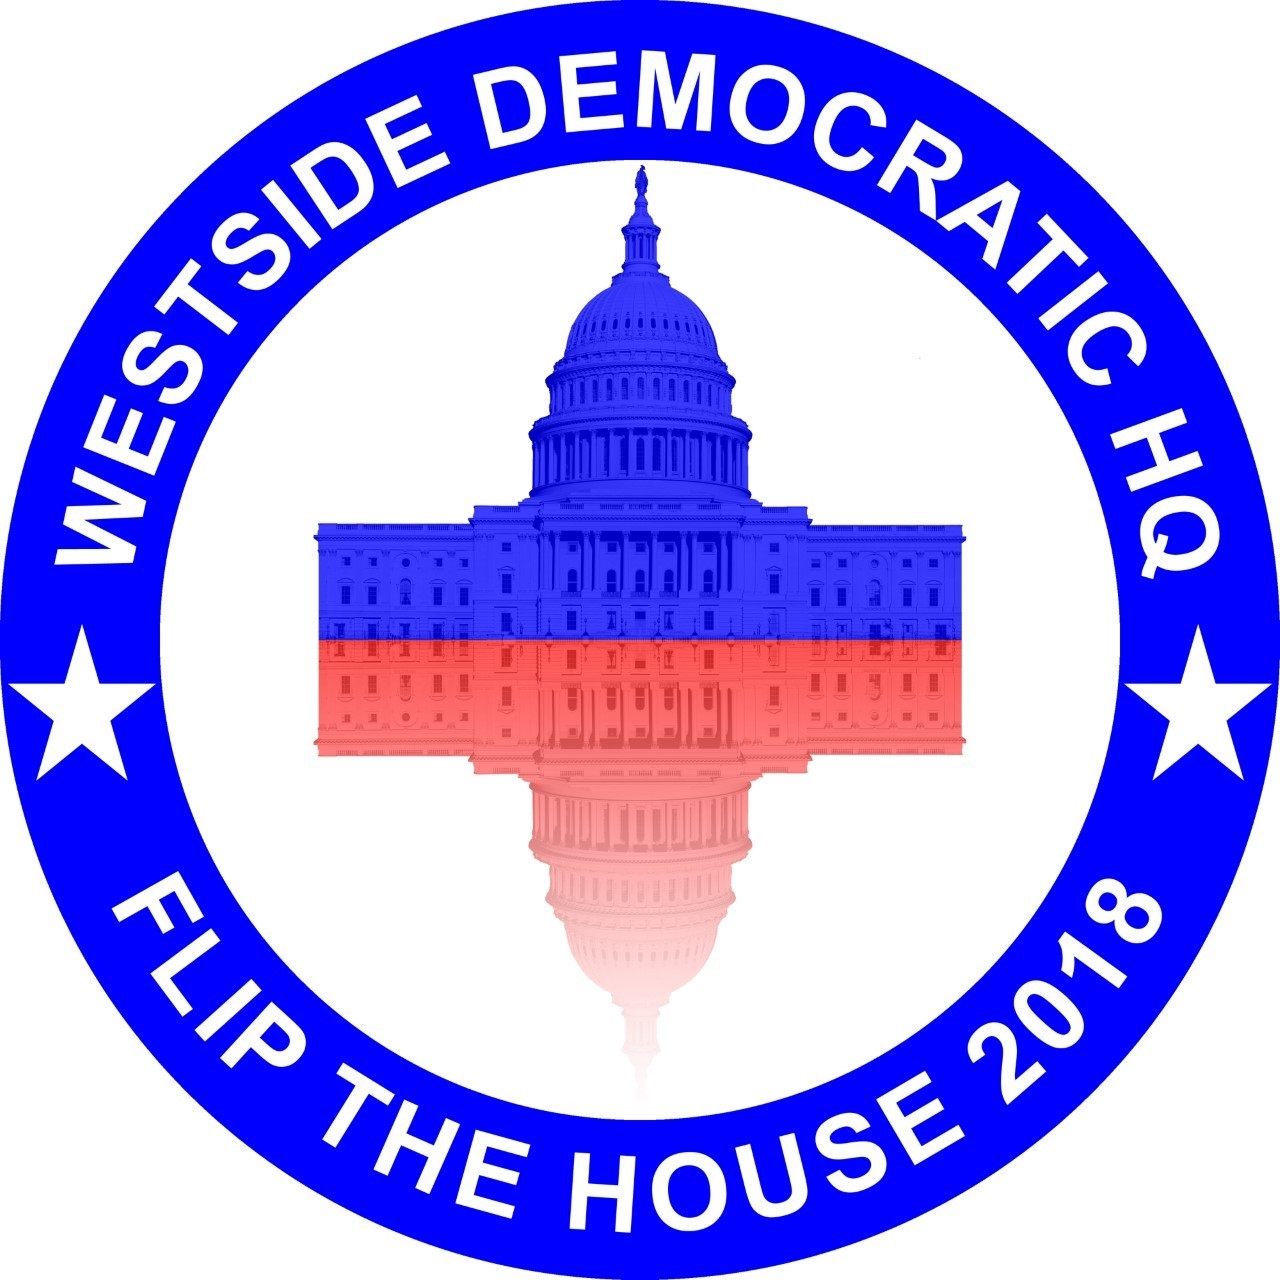 Westside Democratic HQ